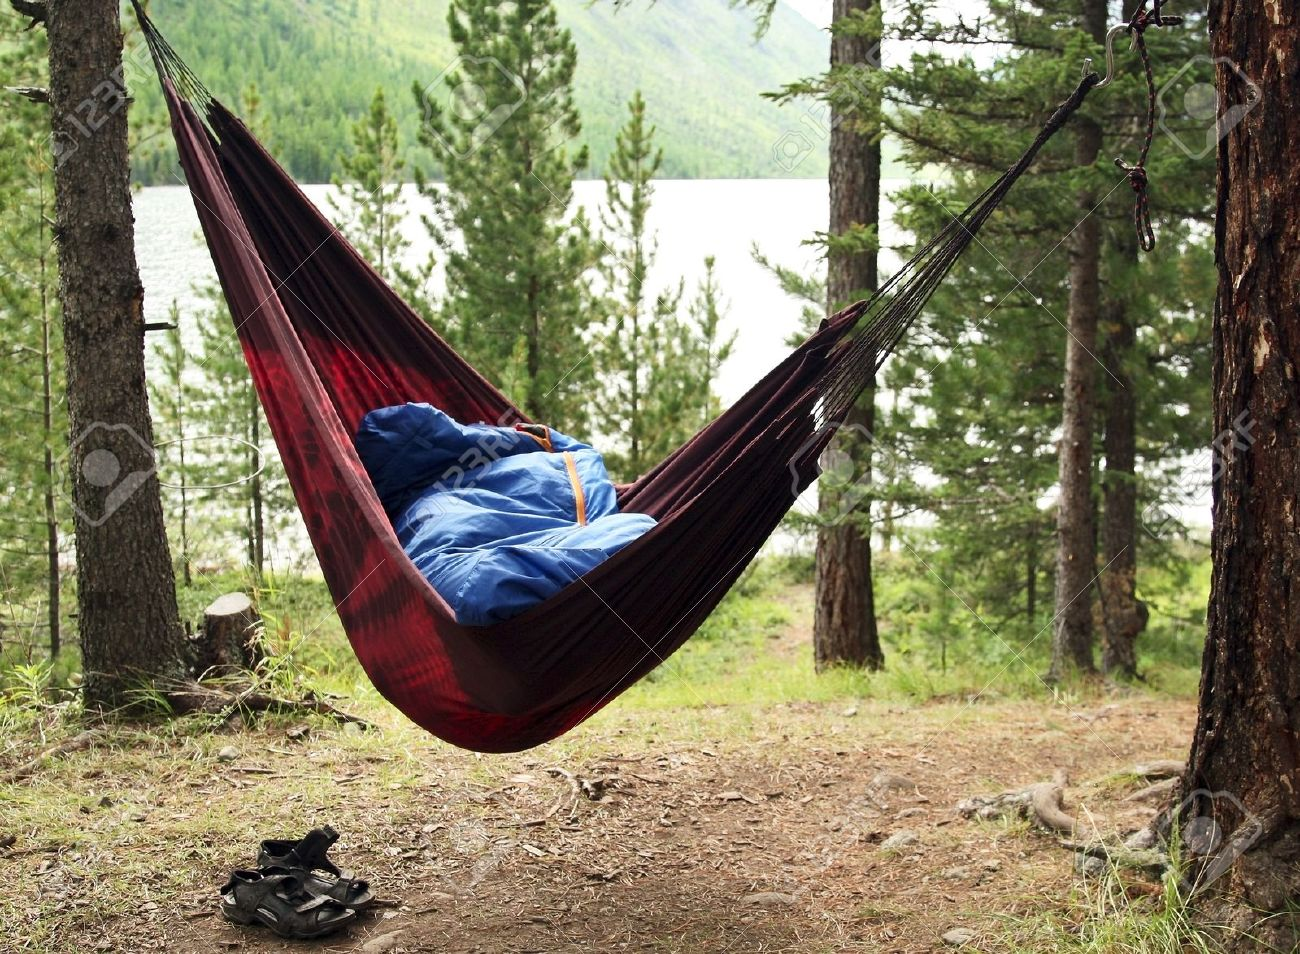 tree hammock dilly sleeping a min outdoors of in benefits